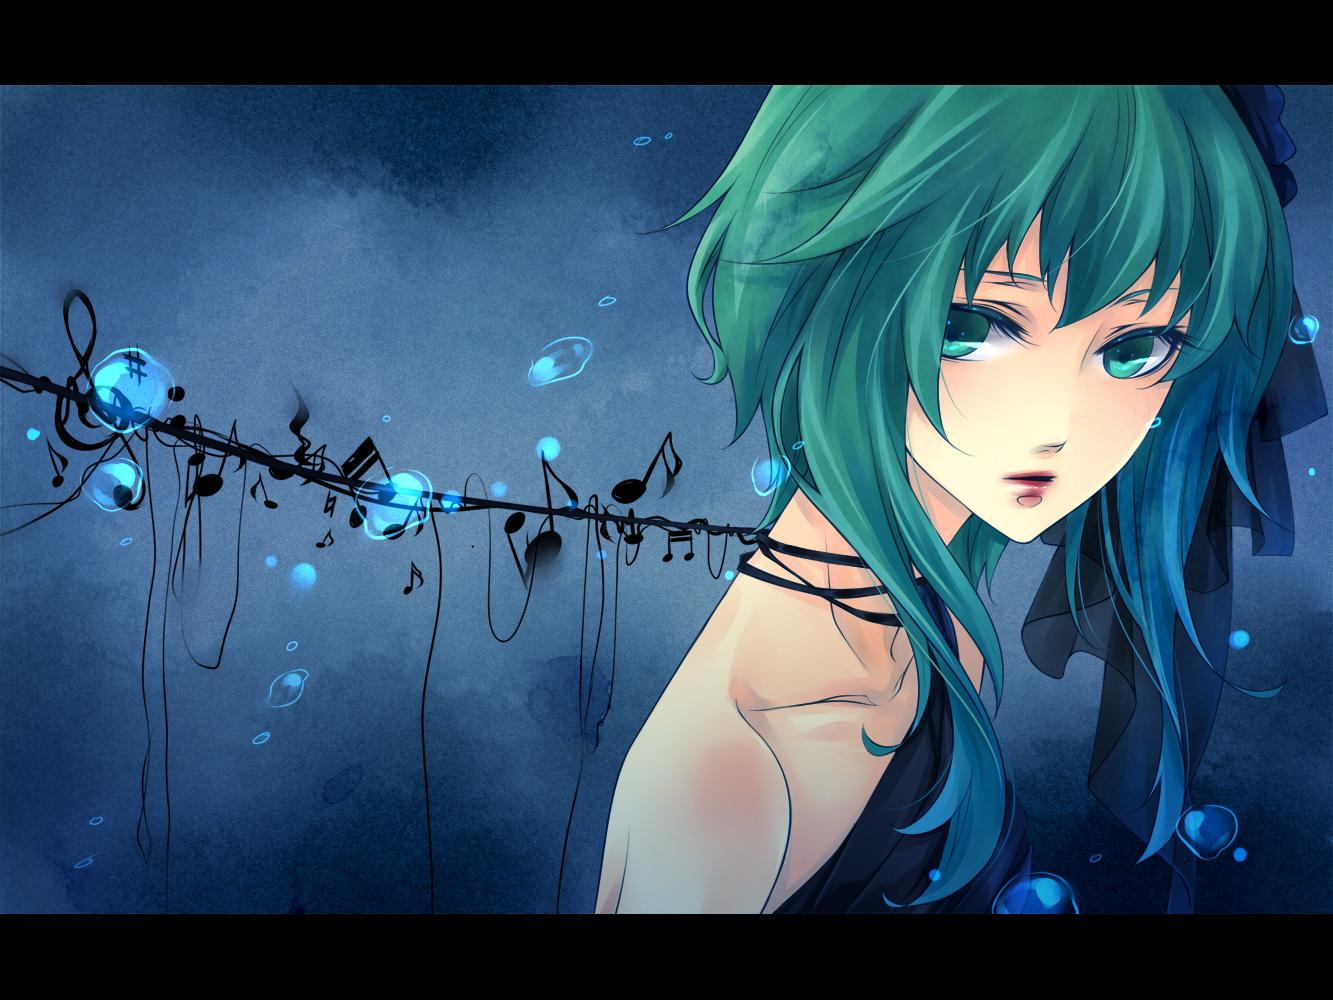 Dark Anime Girl Wallpaper 9328 Hd Wallpapers In Anime Teal